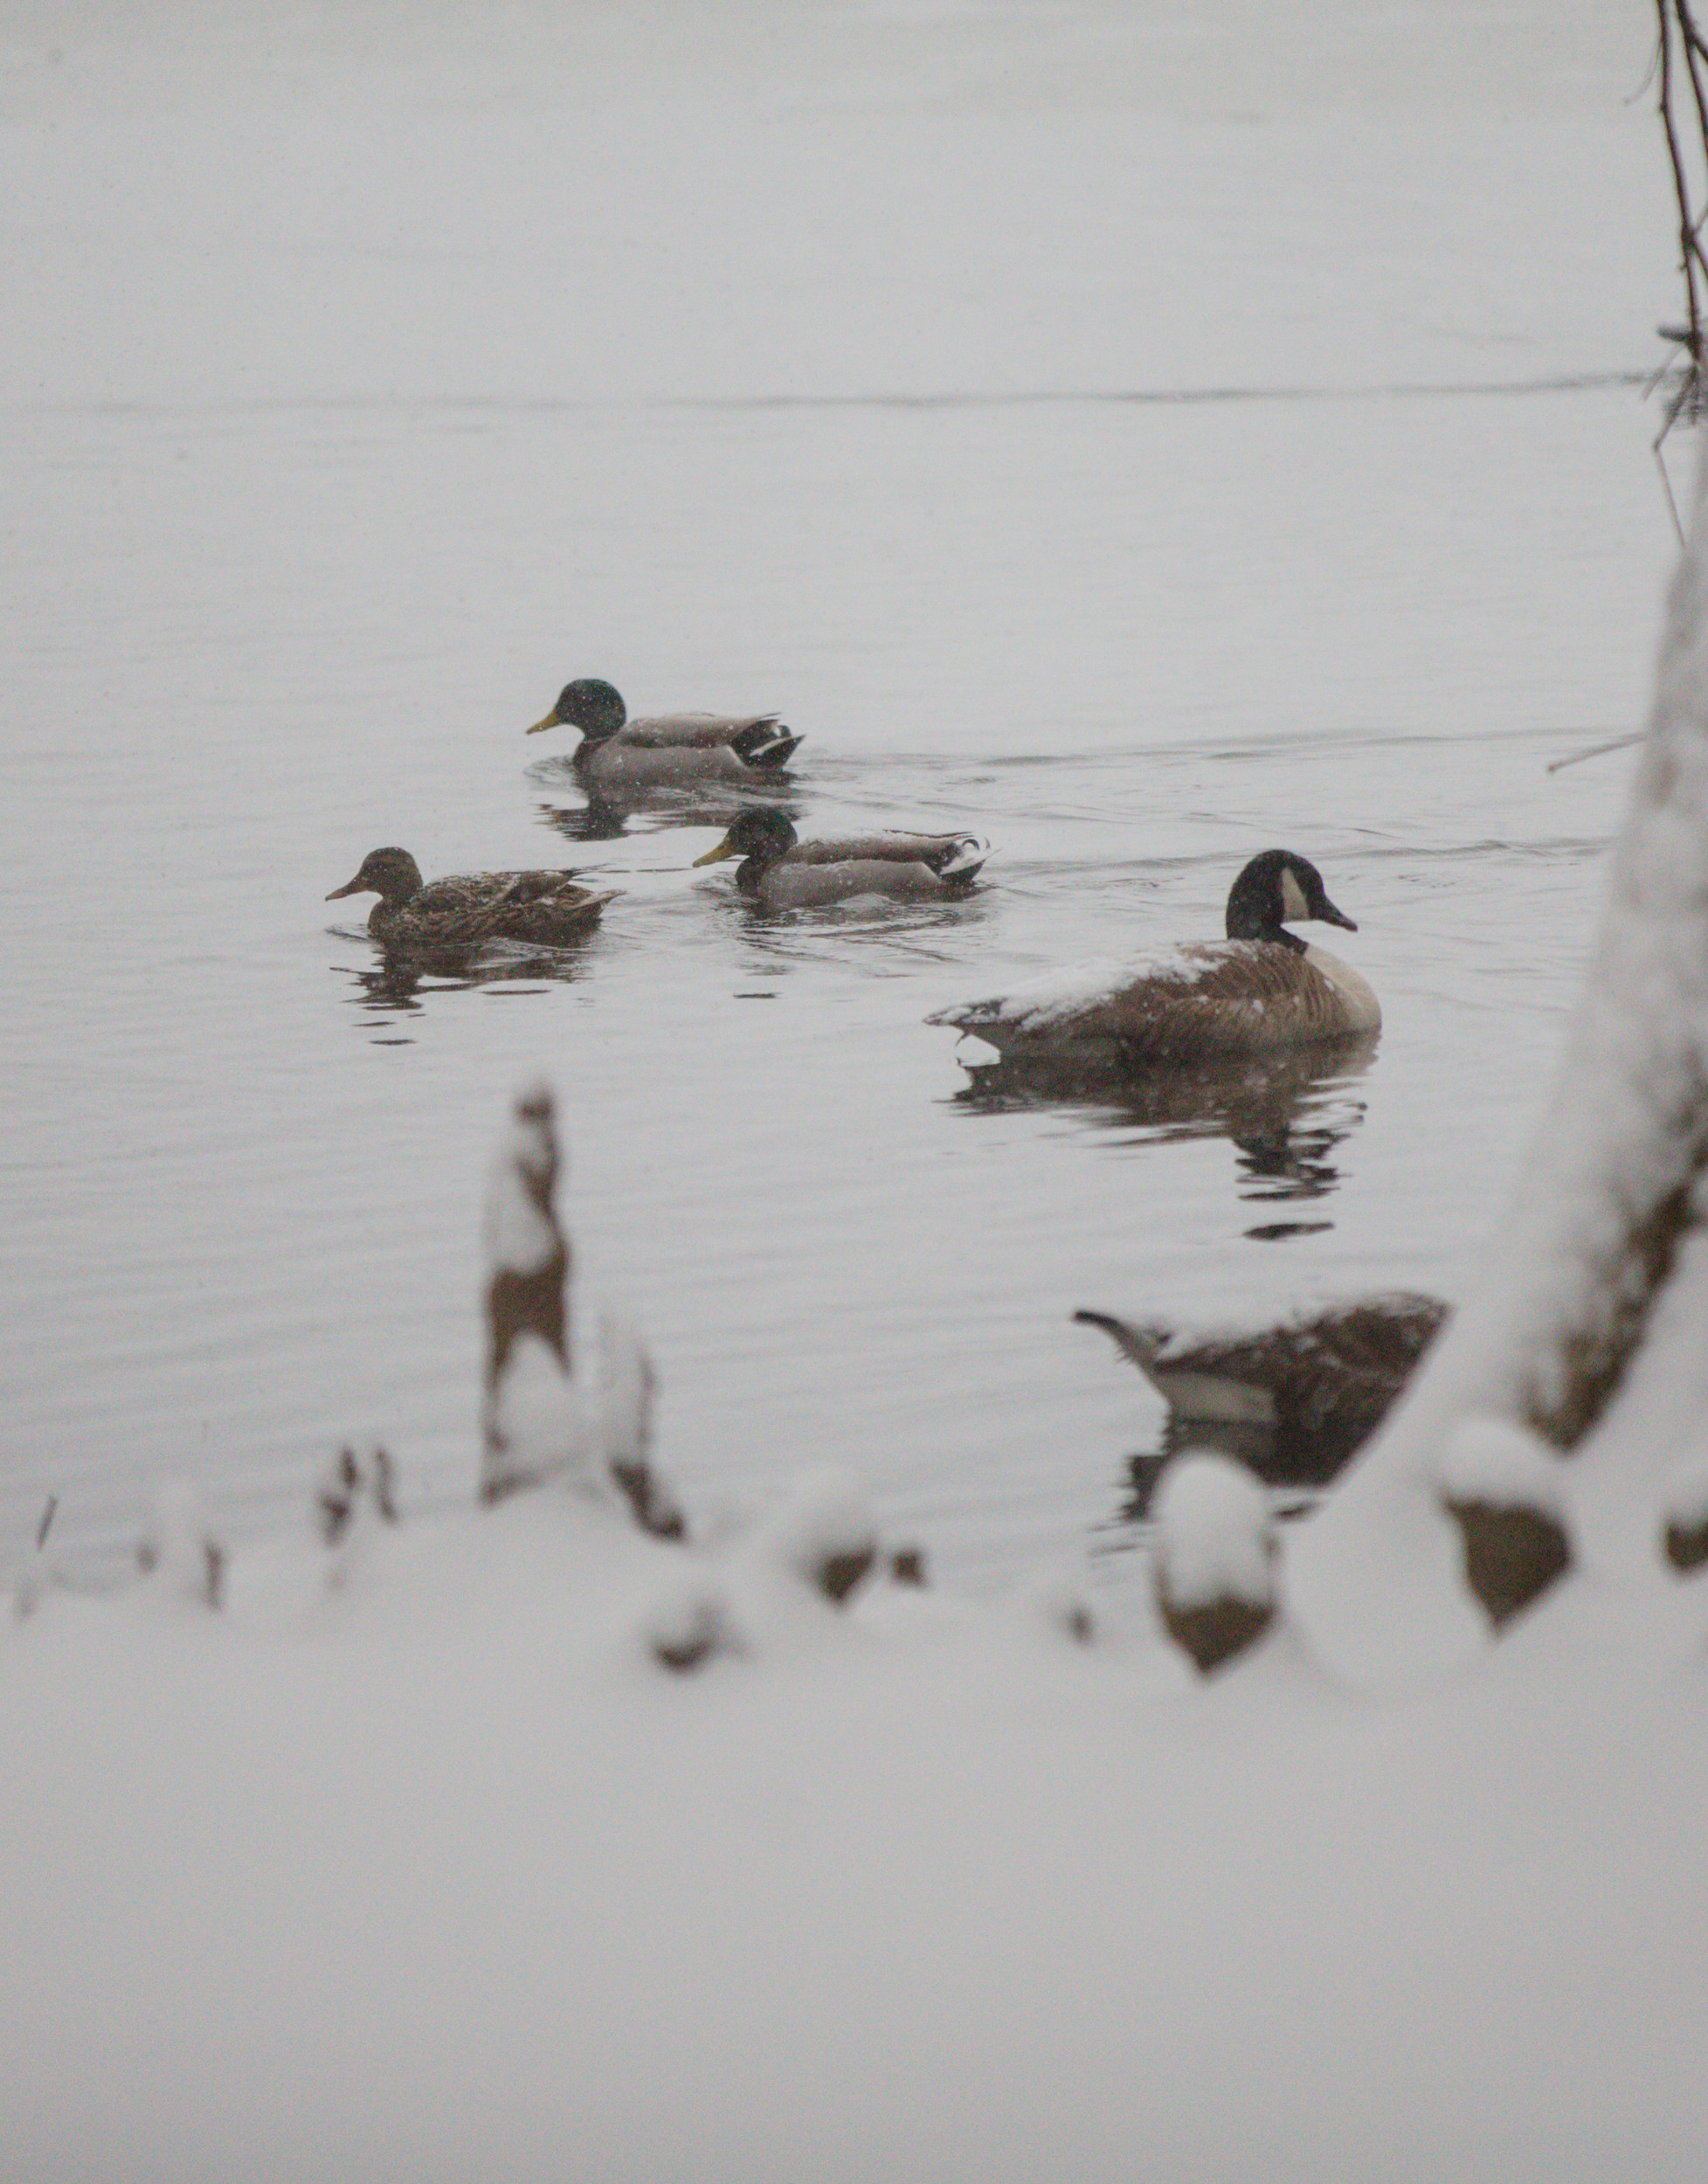 Ducks and a goose swim the frigid waters at Swan Lake-Iris Gardens on Wednesday.